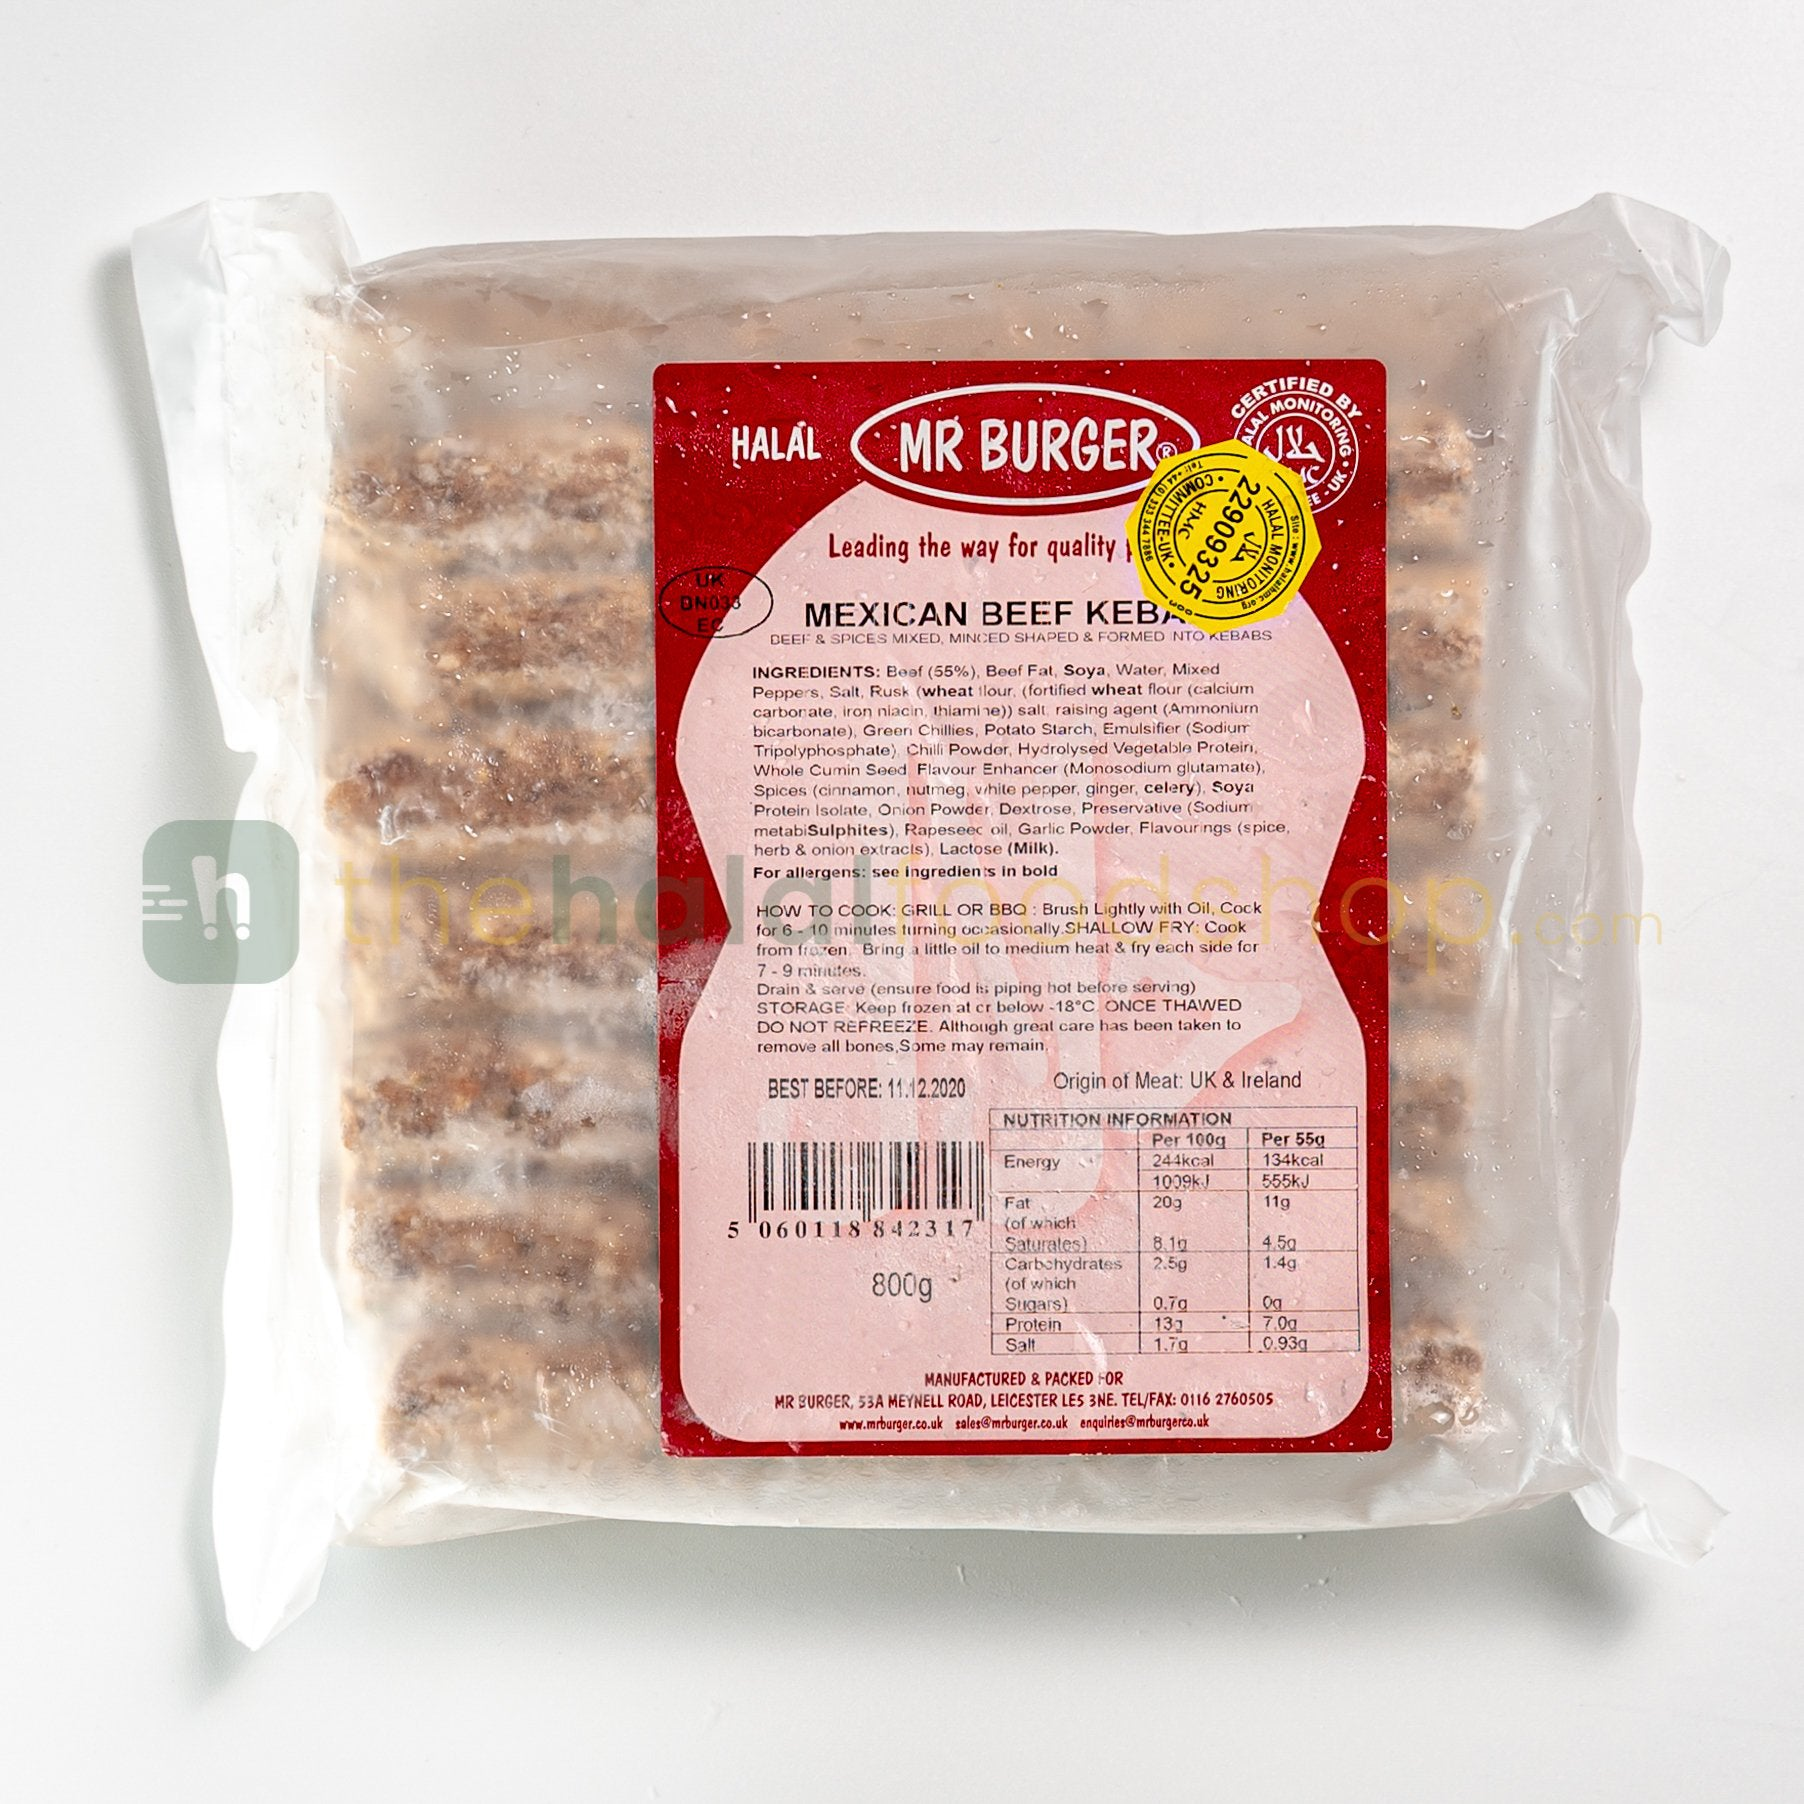 Mr Burger Mexican Beef Kebabs (800g)